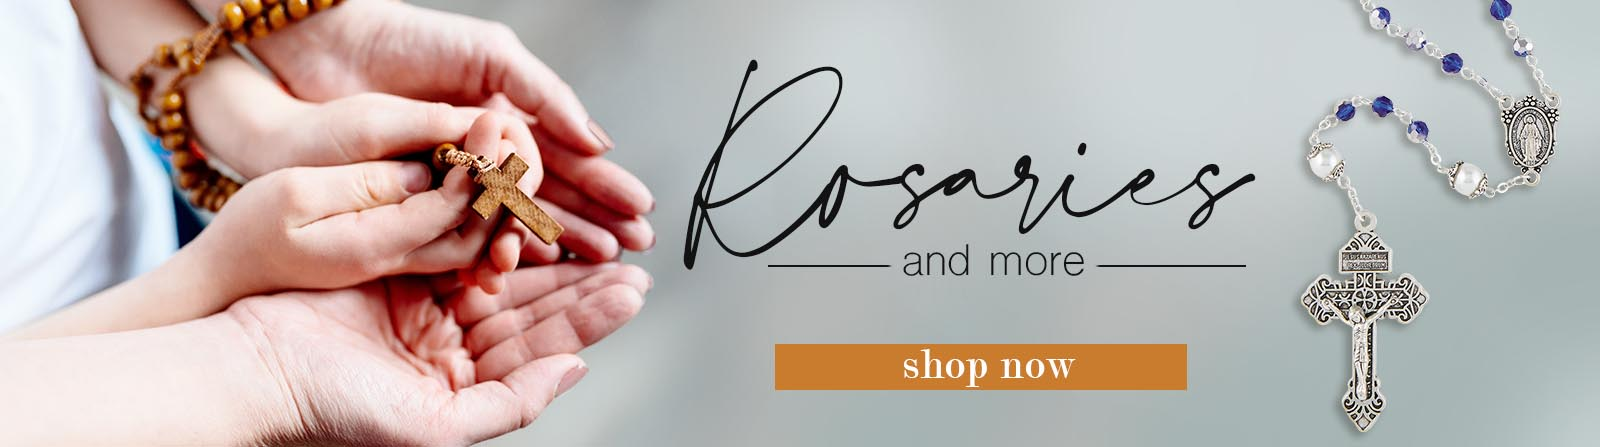 Rosaries and More - Shop now